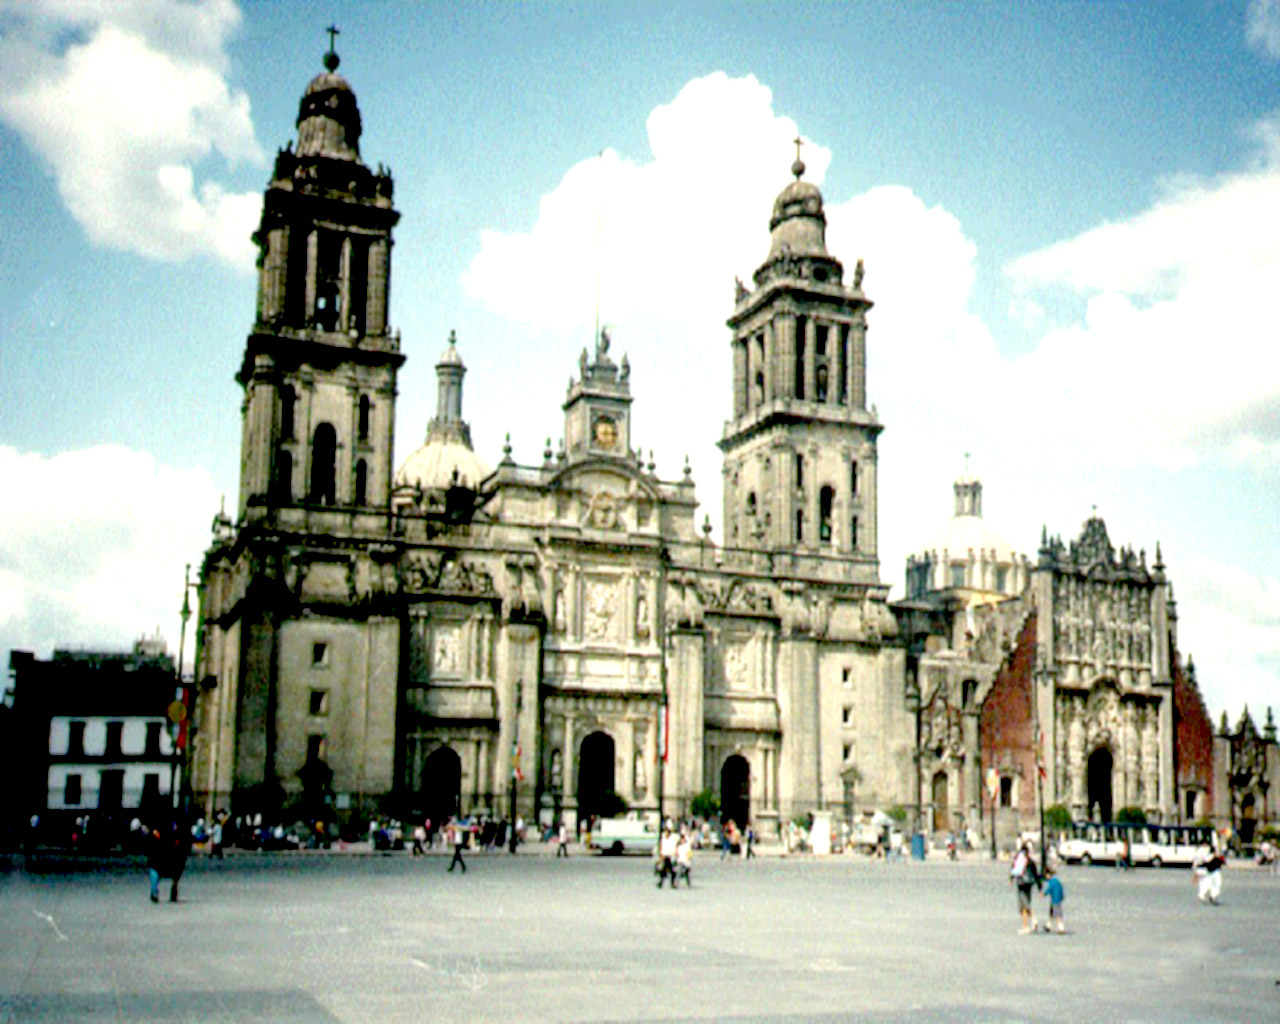 Mexico city wallpaper wallpapersafari - Mexico mobel walldorf ...